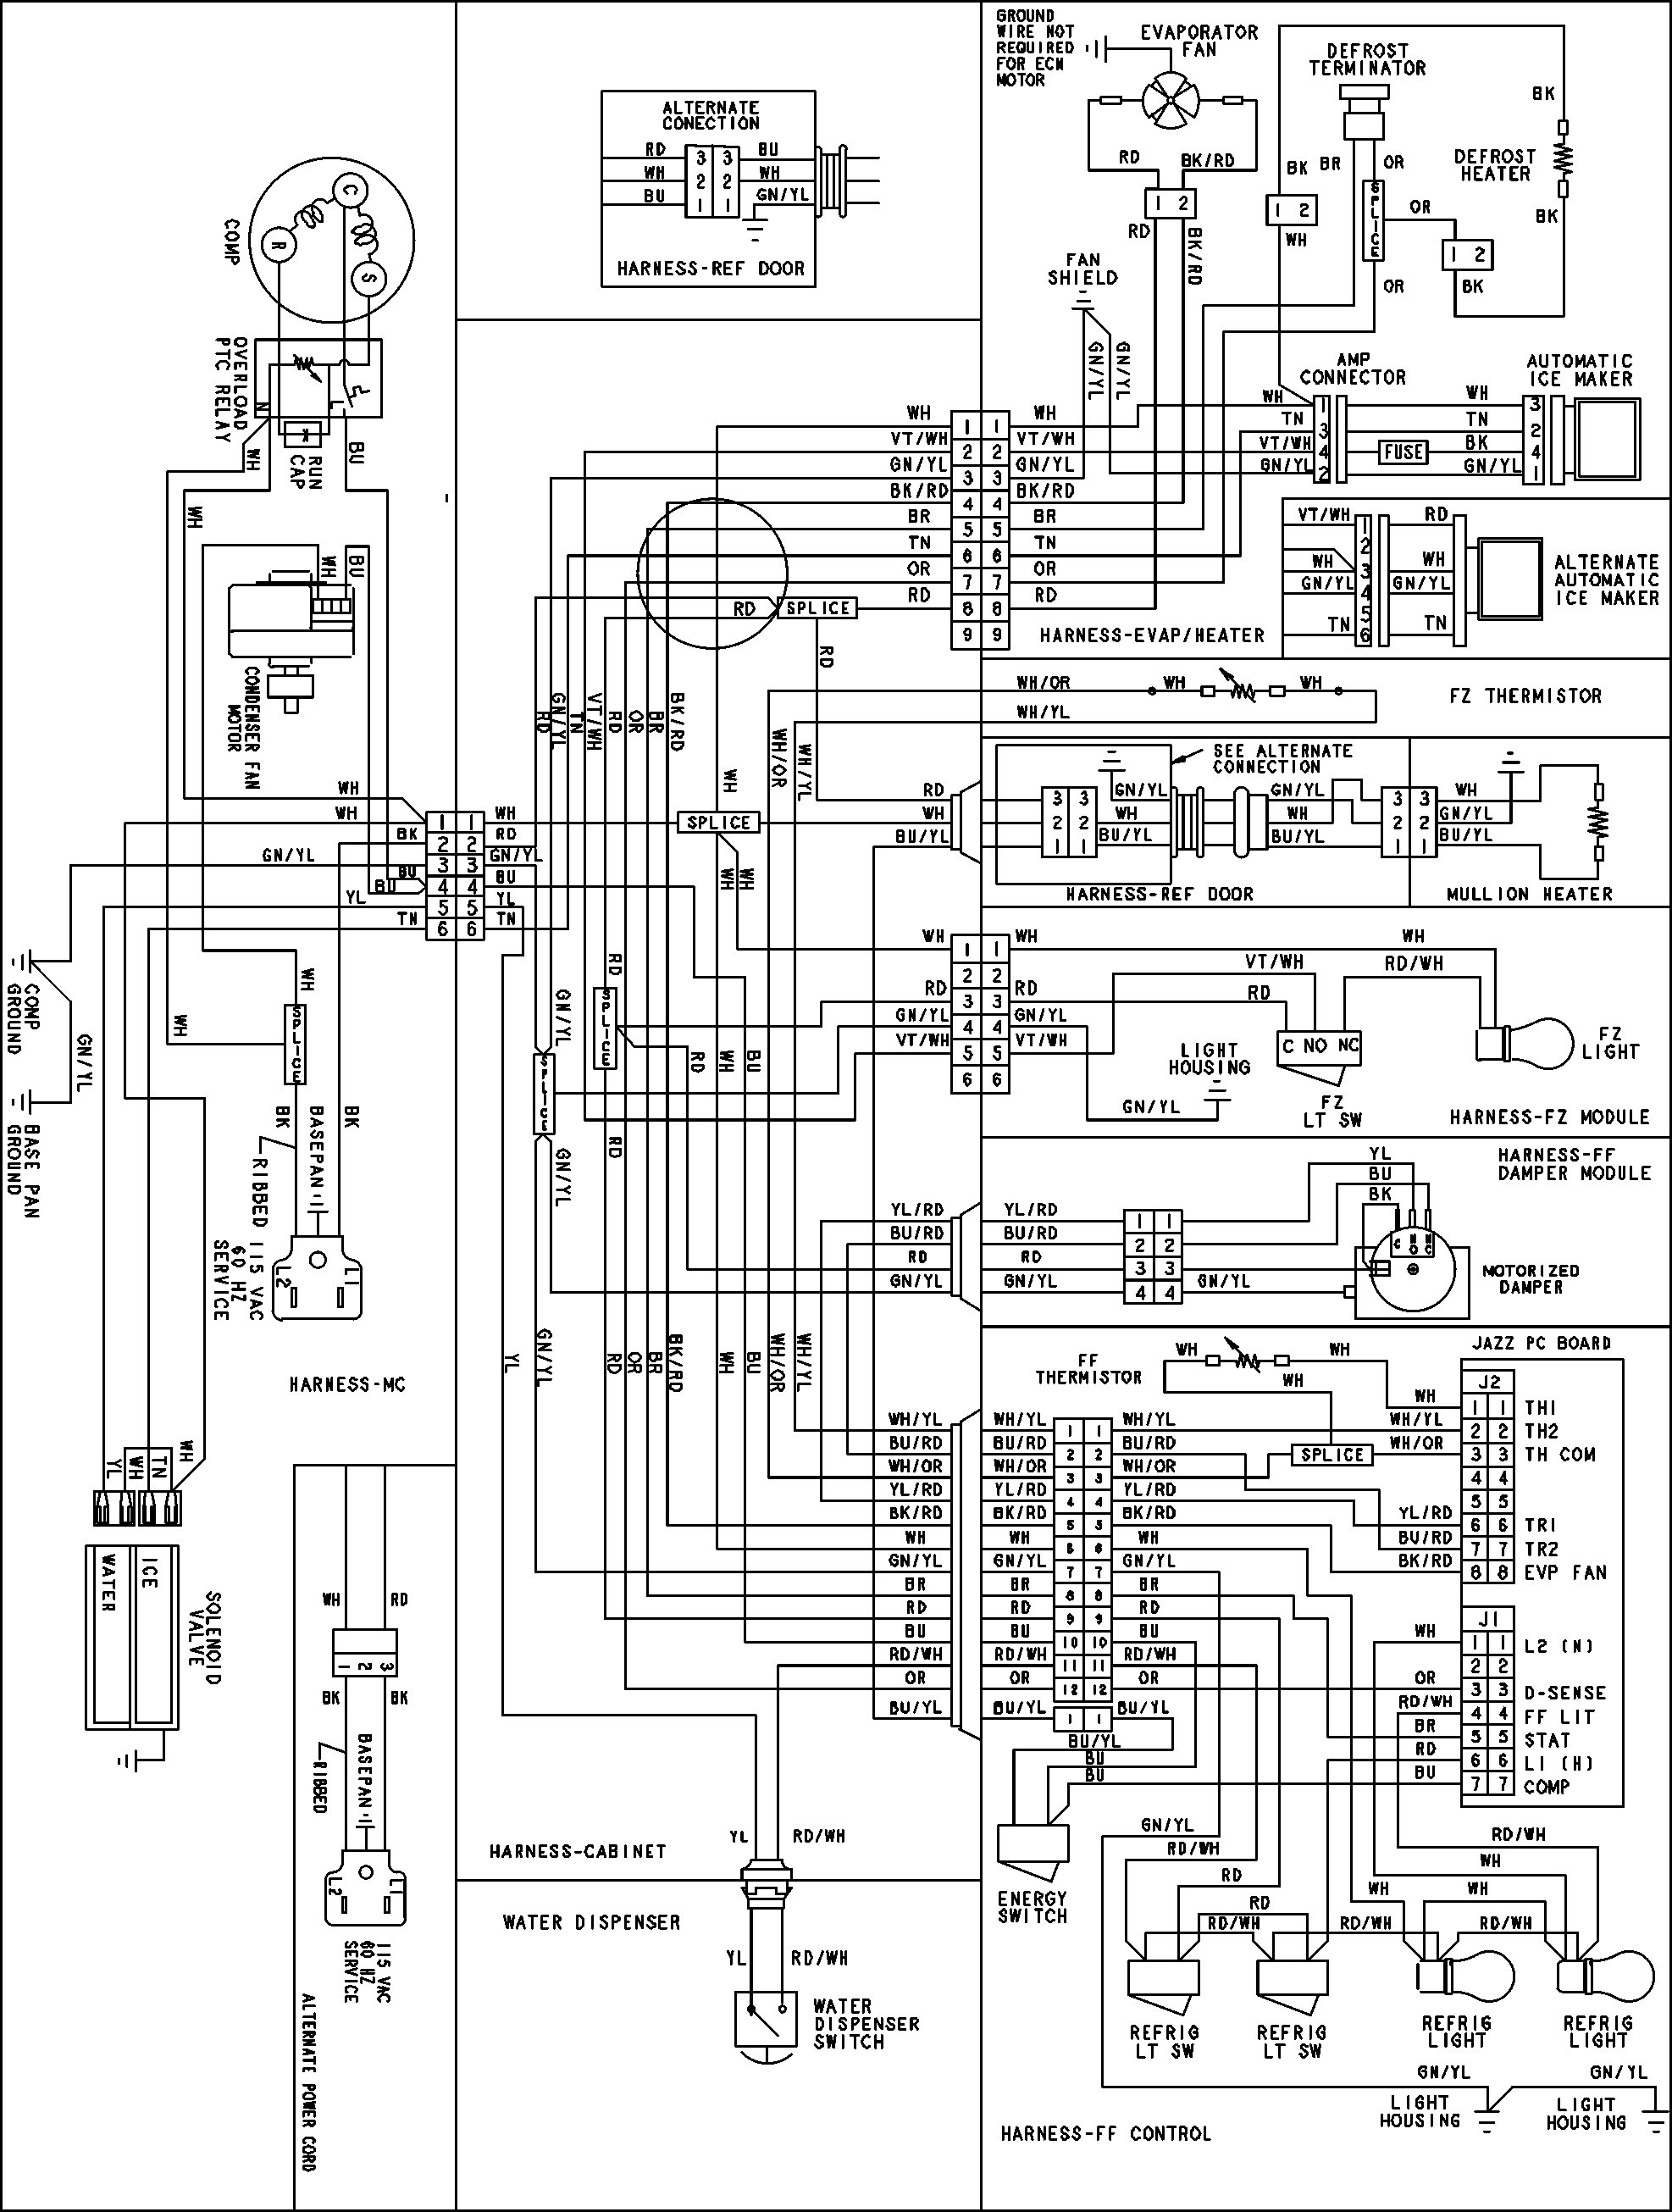 Abb Wiring Diagram - All Diagram Schematics on